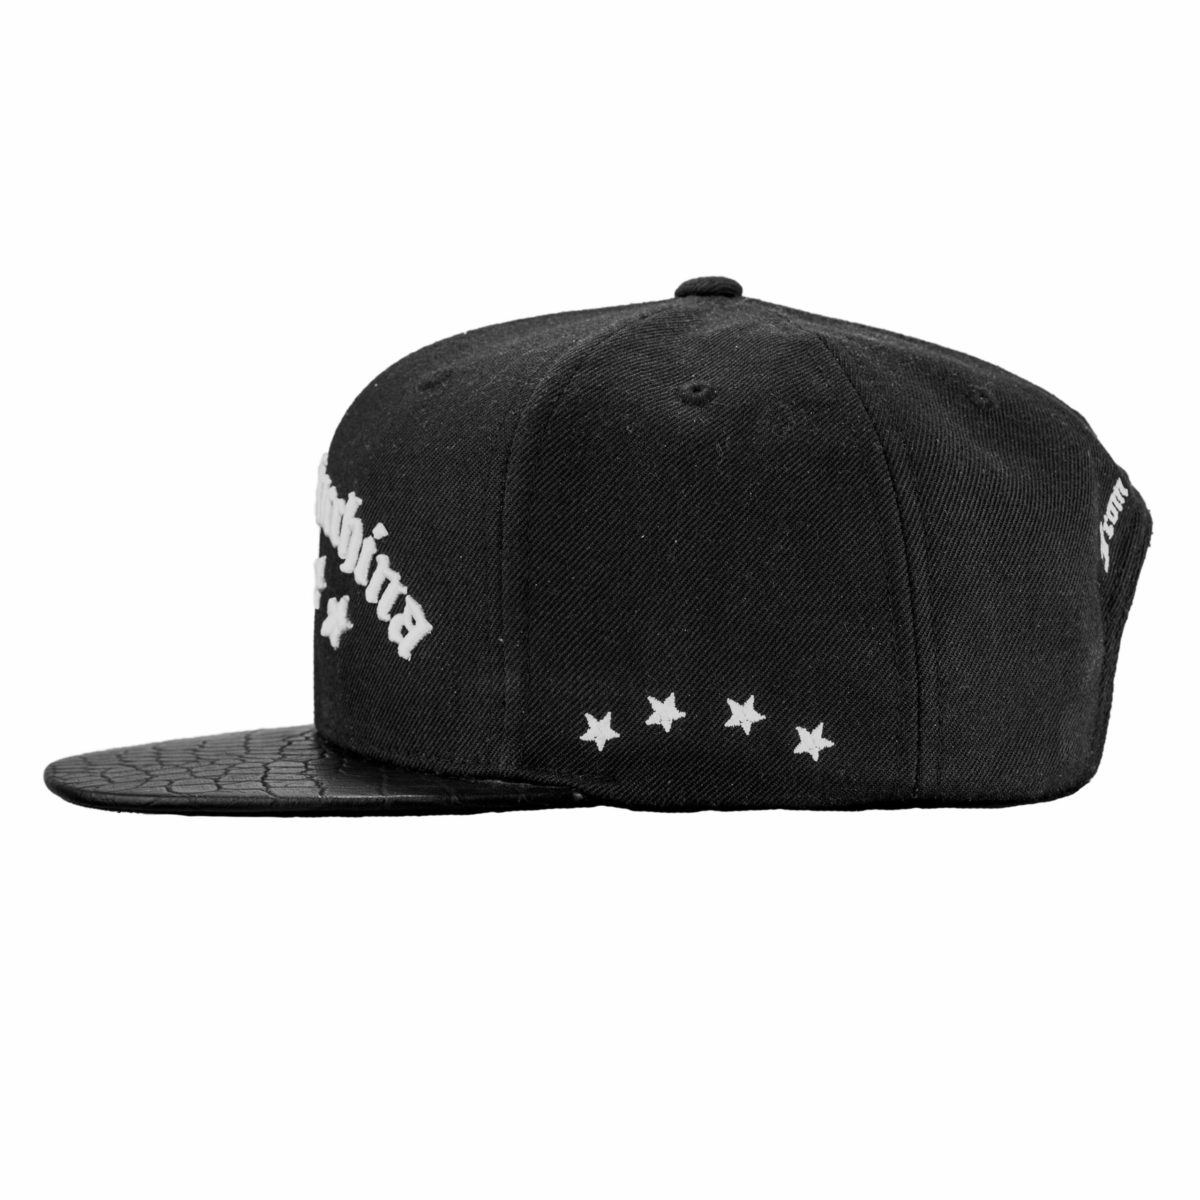 Luxury_Snapback_Rockstar_left